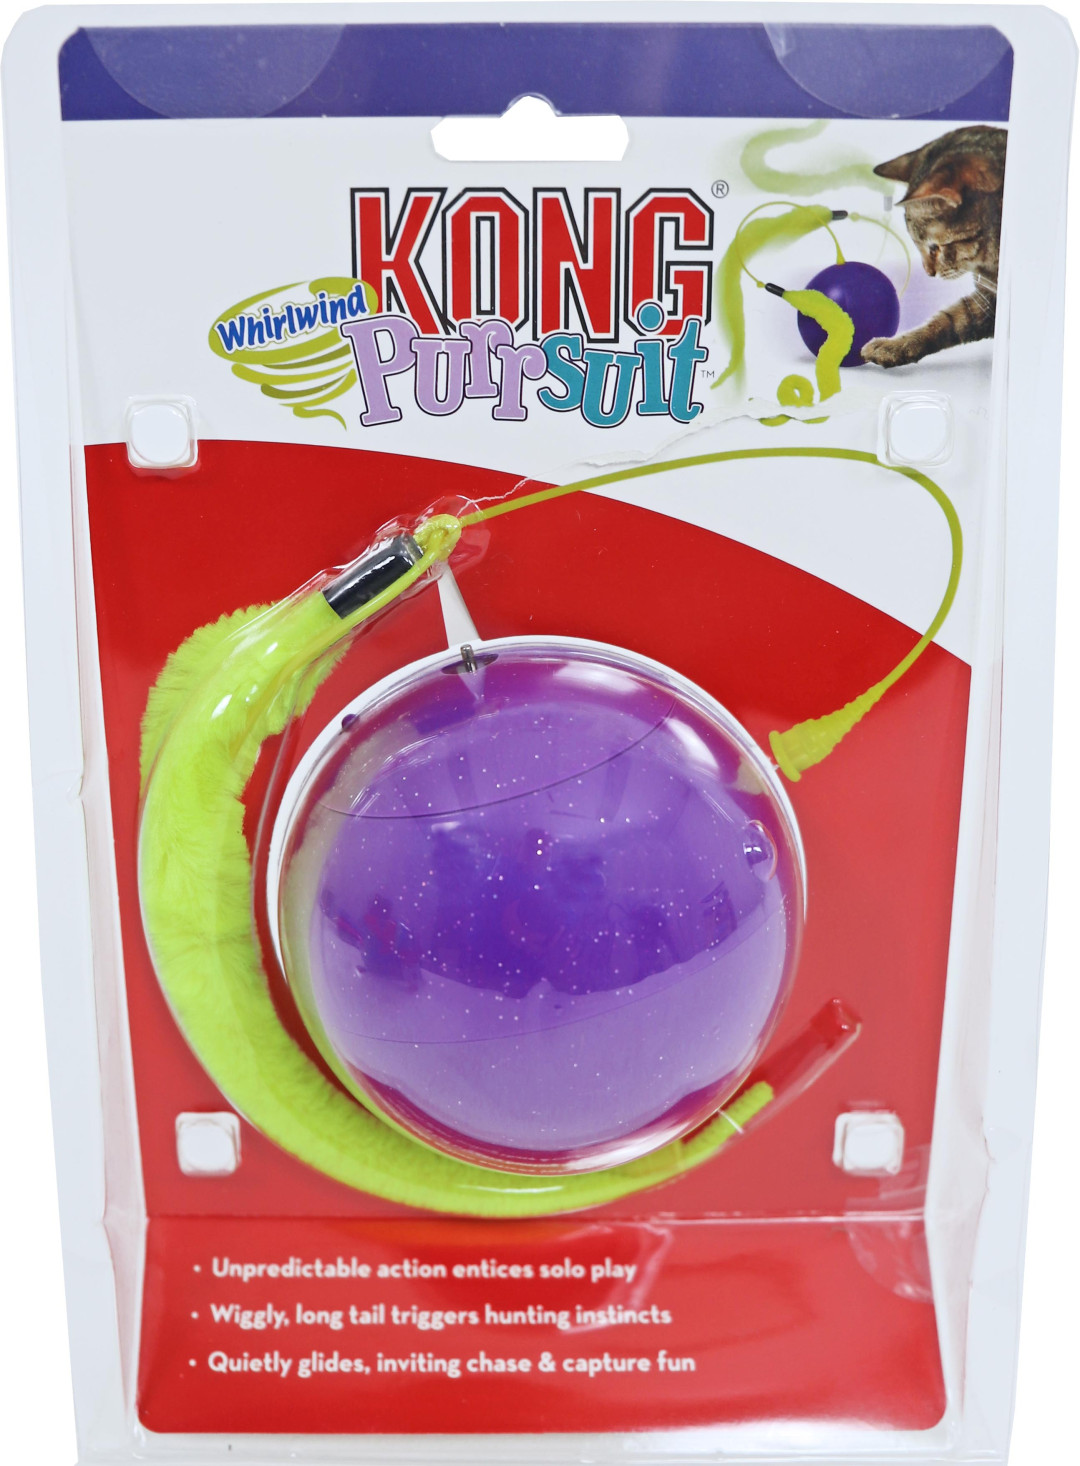 Kong Purrsuit Whirlwind